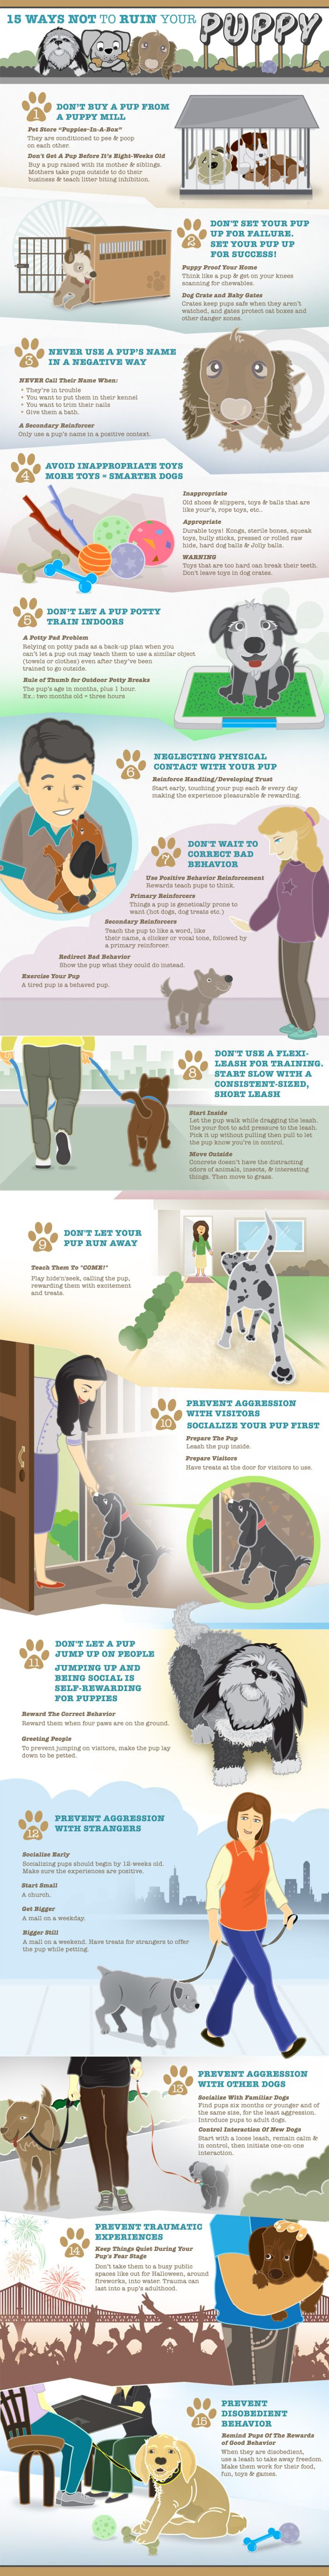 #1 ~ DON'T BUY FROM A PUPPY MILL OR BREEDER. Adopt, Don't Shop! Rescue. Foster. Neuter. Spay. Transport. DONATE. ~ This is such good information for new furkid guardians! I'm going to print it and give it to friends.